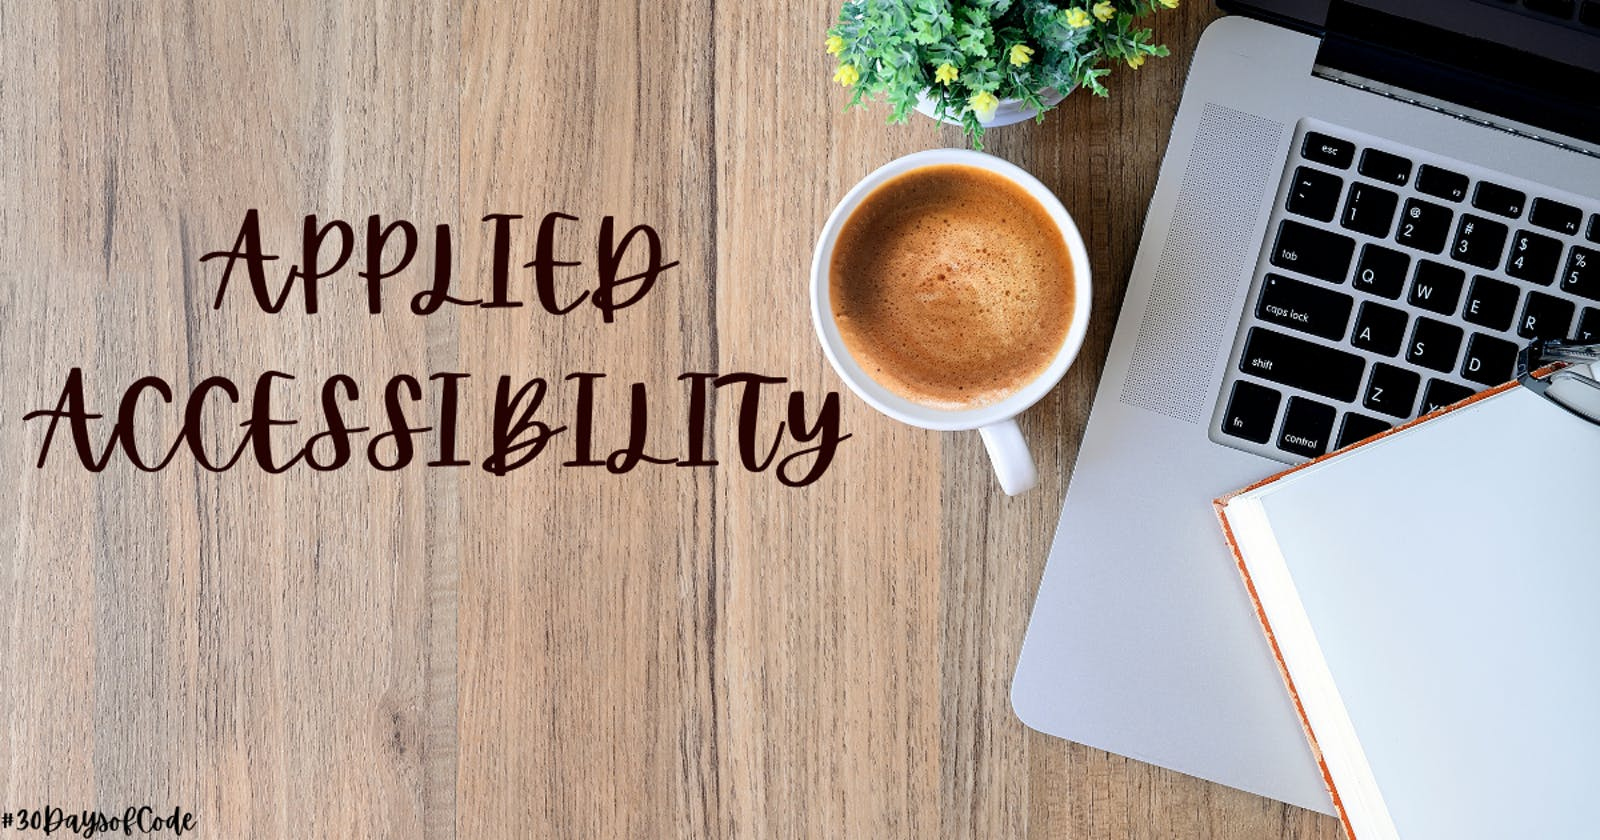 Applied Accessibility